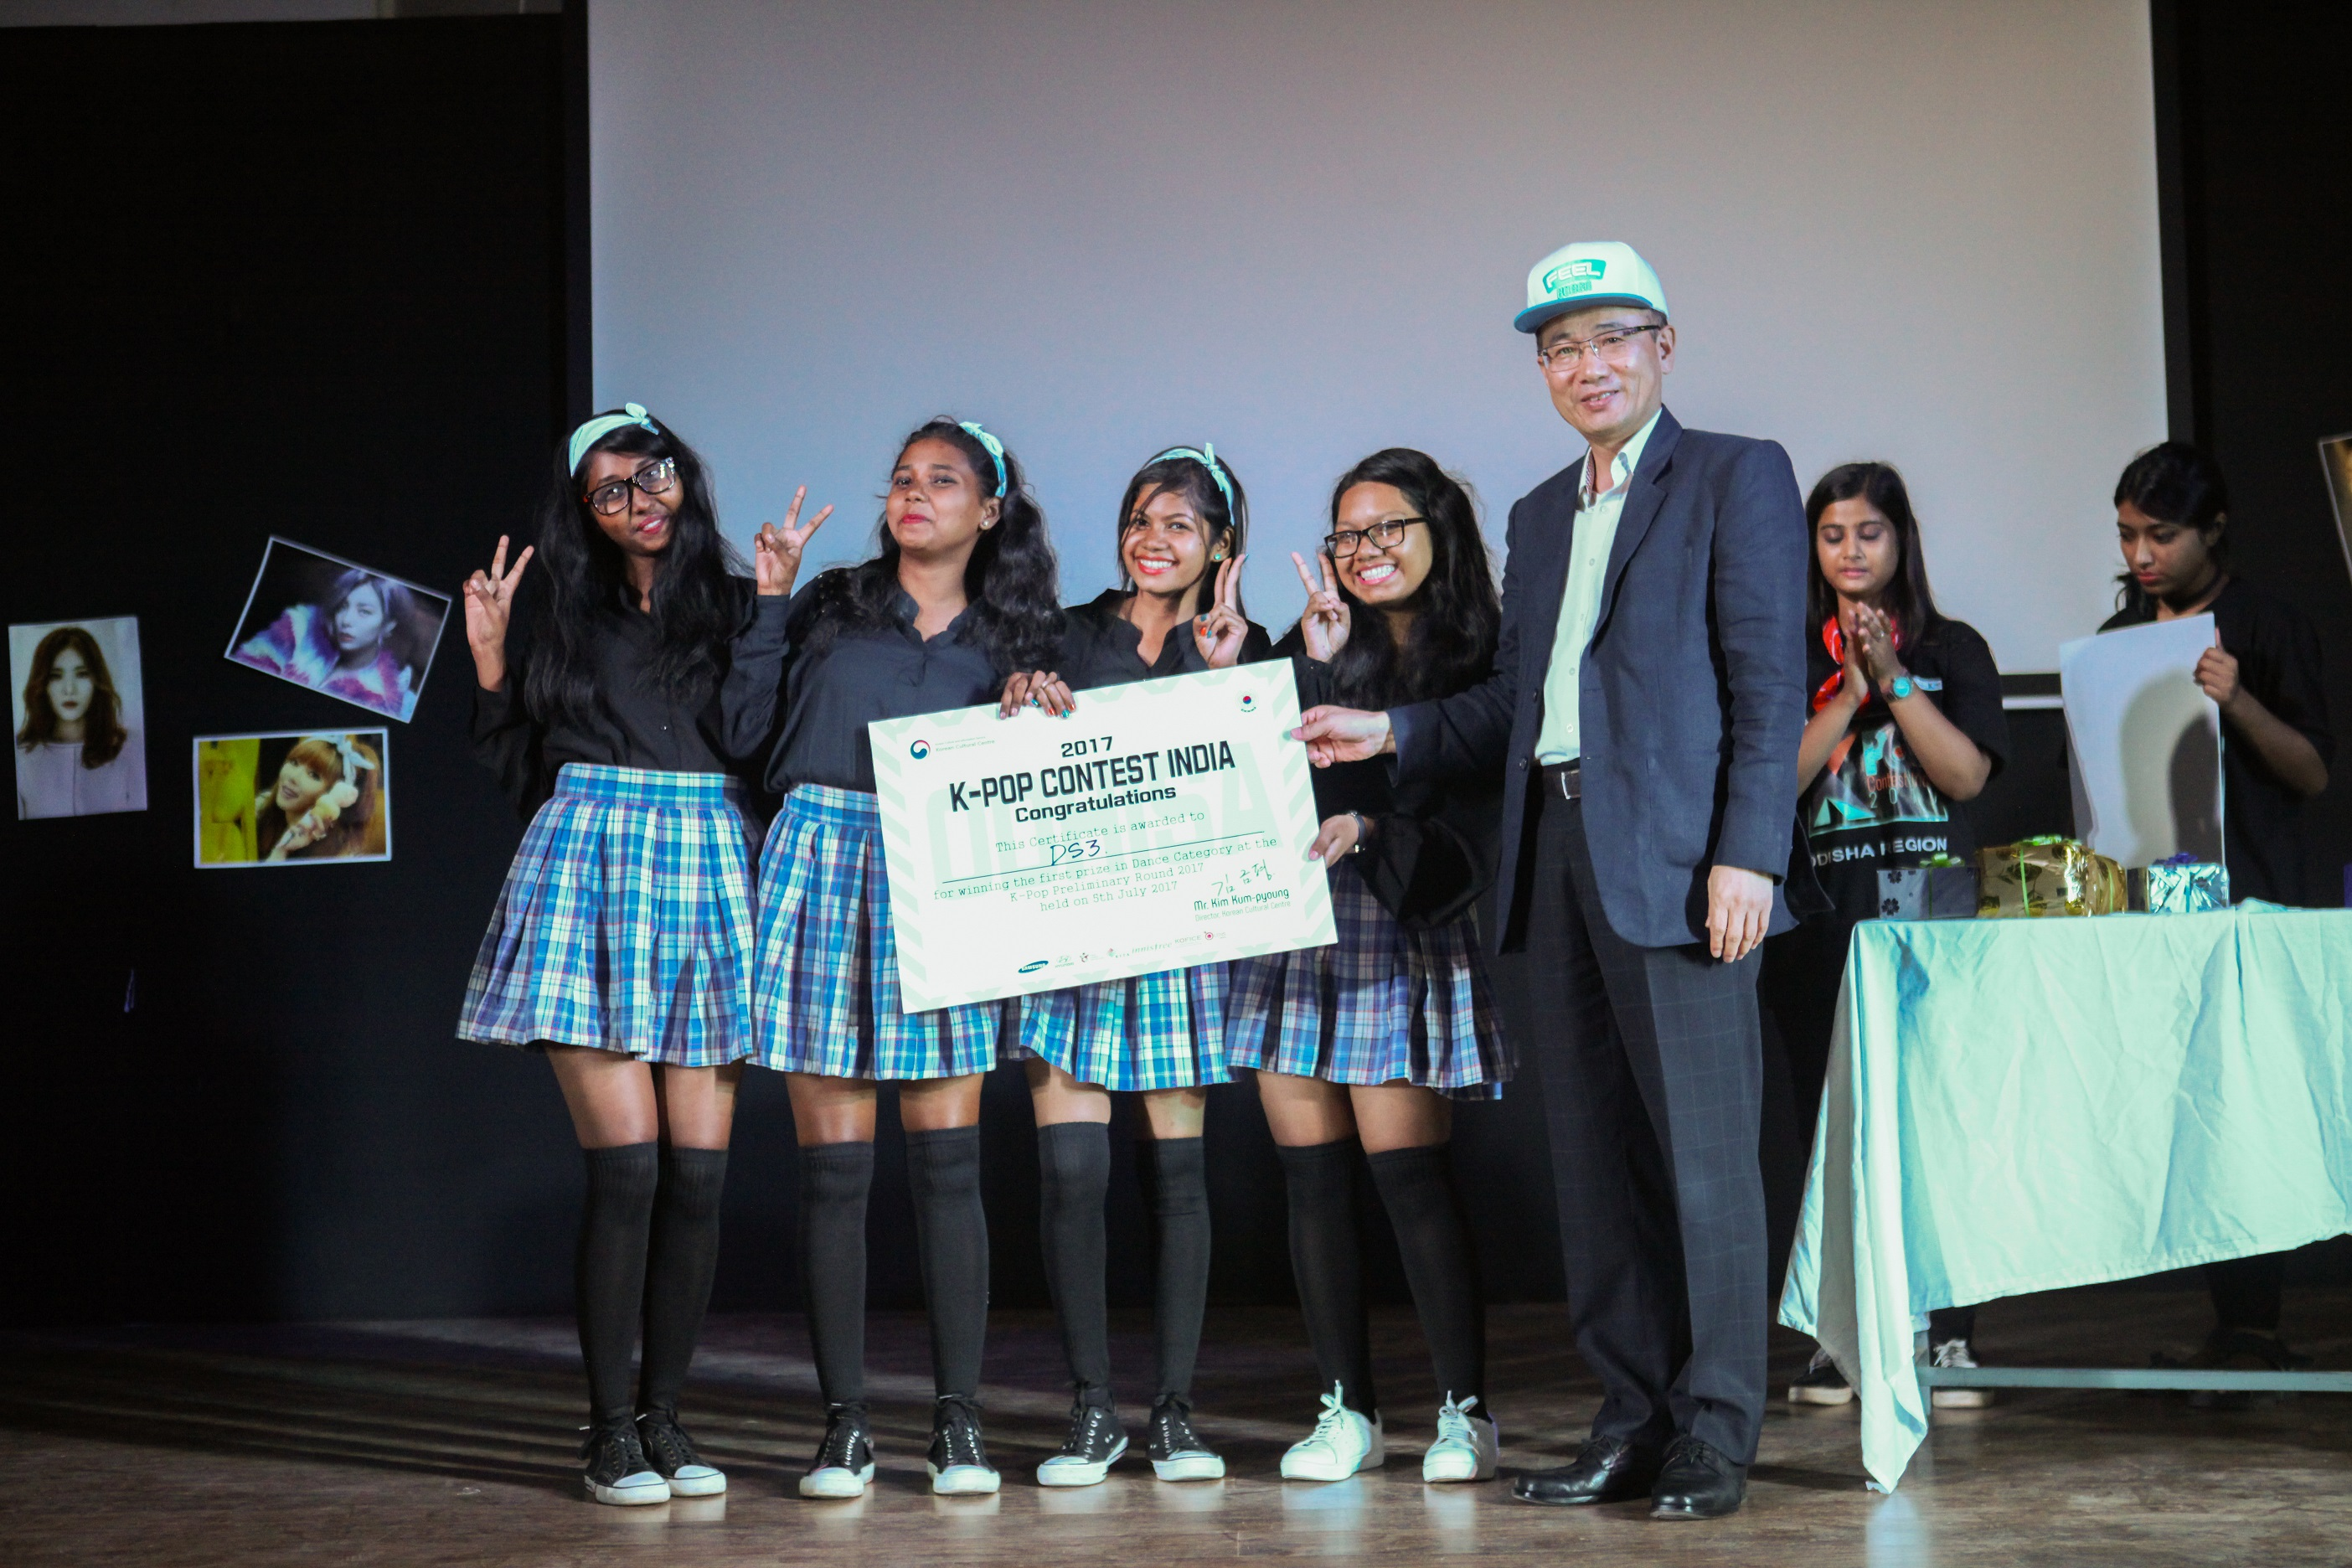 Bhubaneswar hosted its first ever K-Pop Contest on 5th July hosted